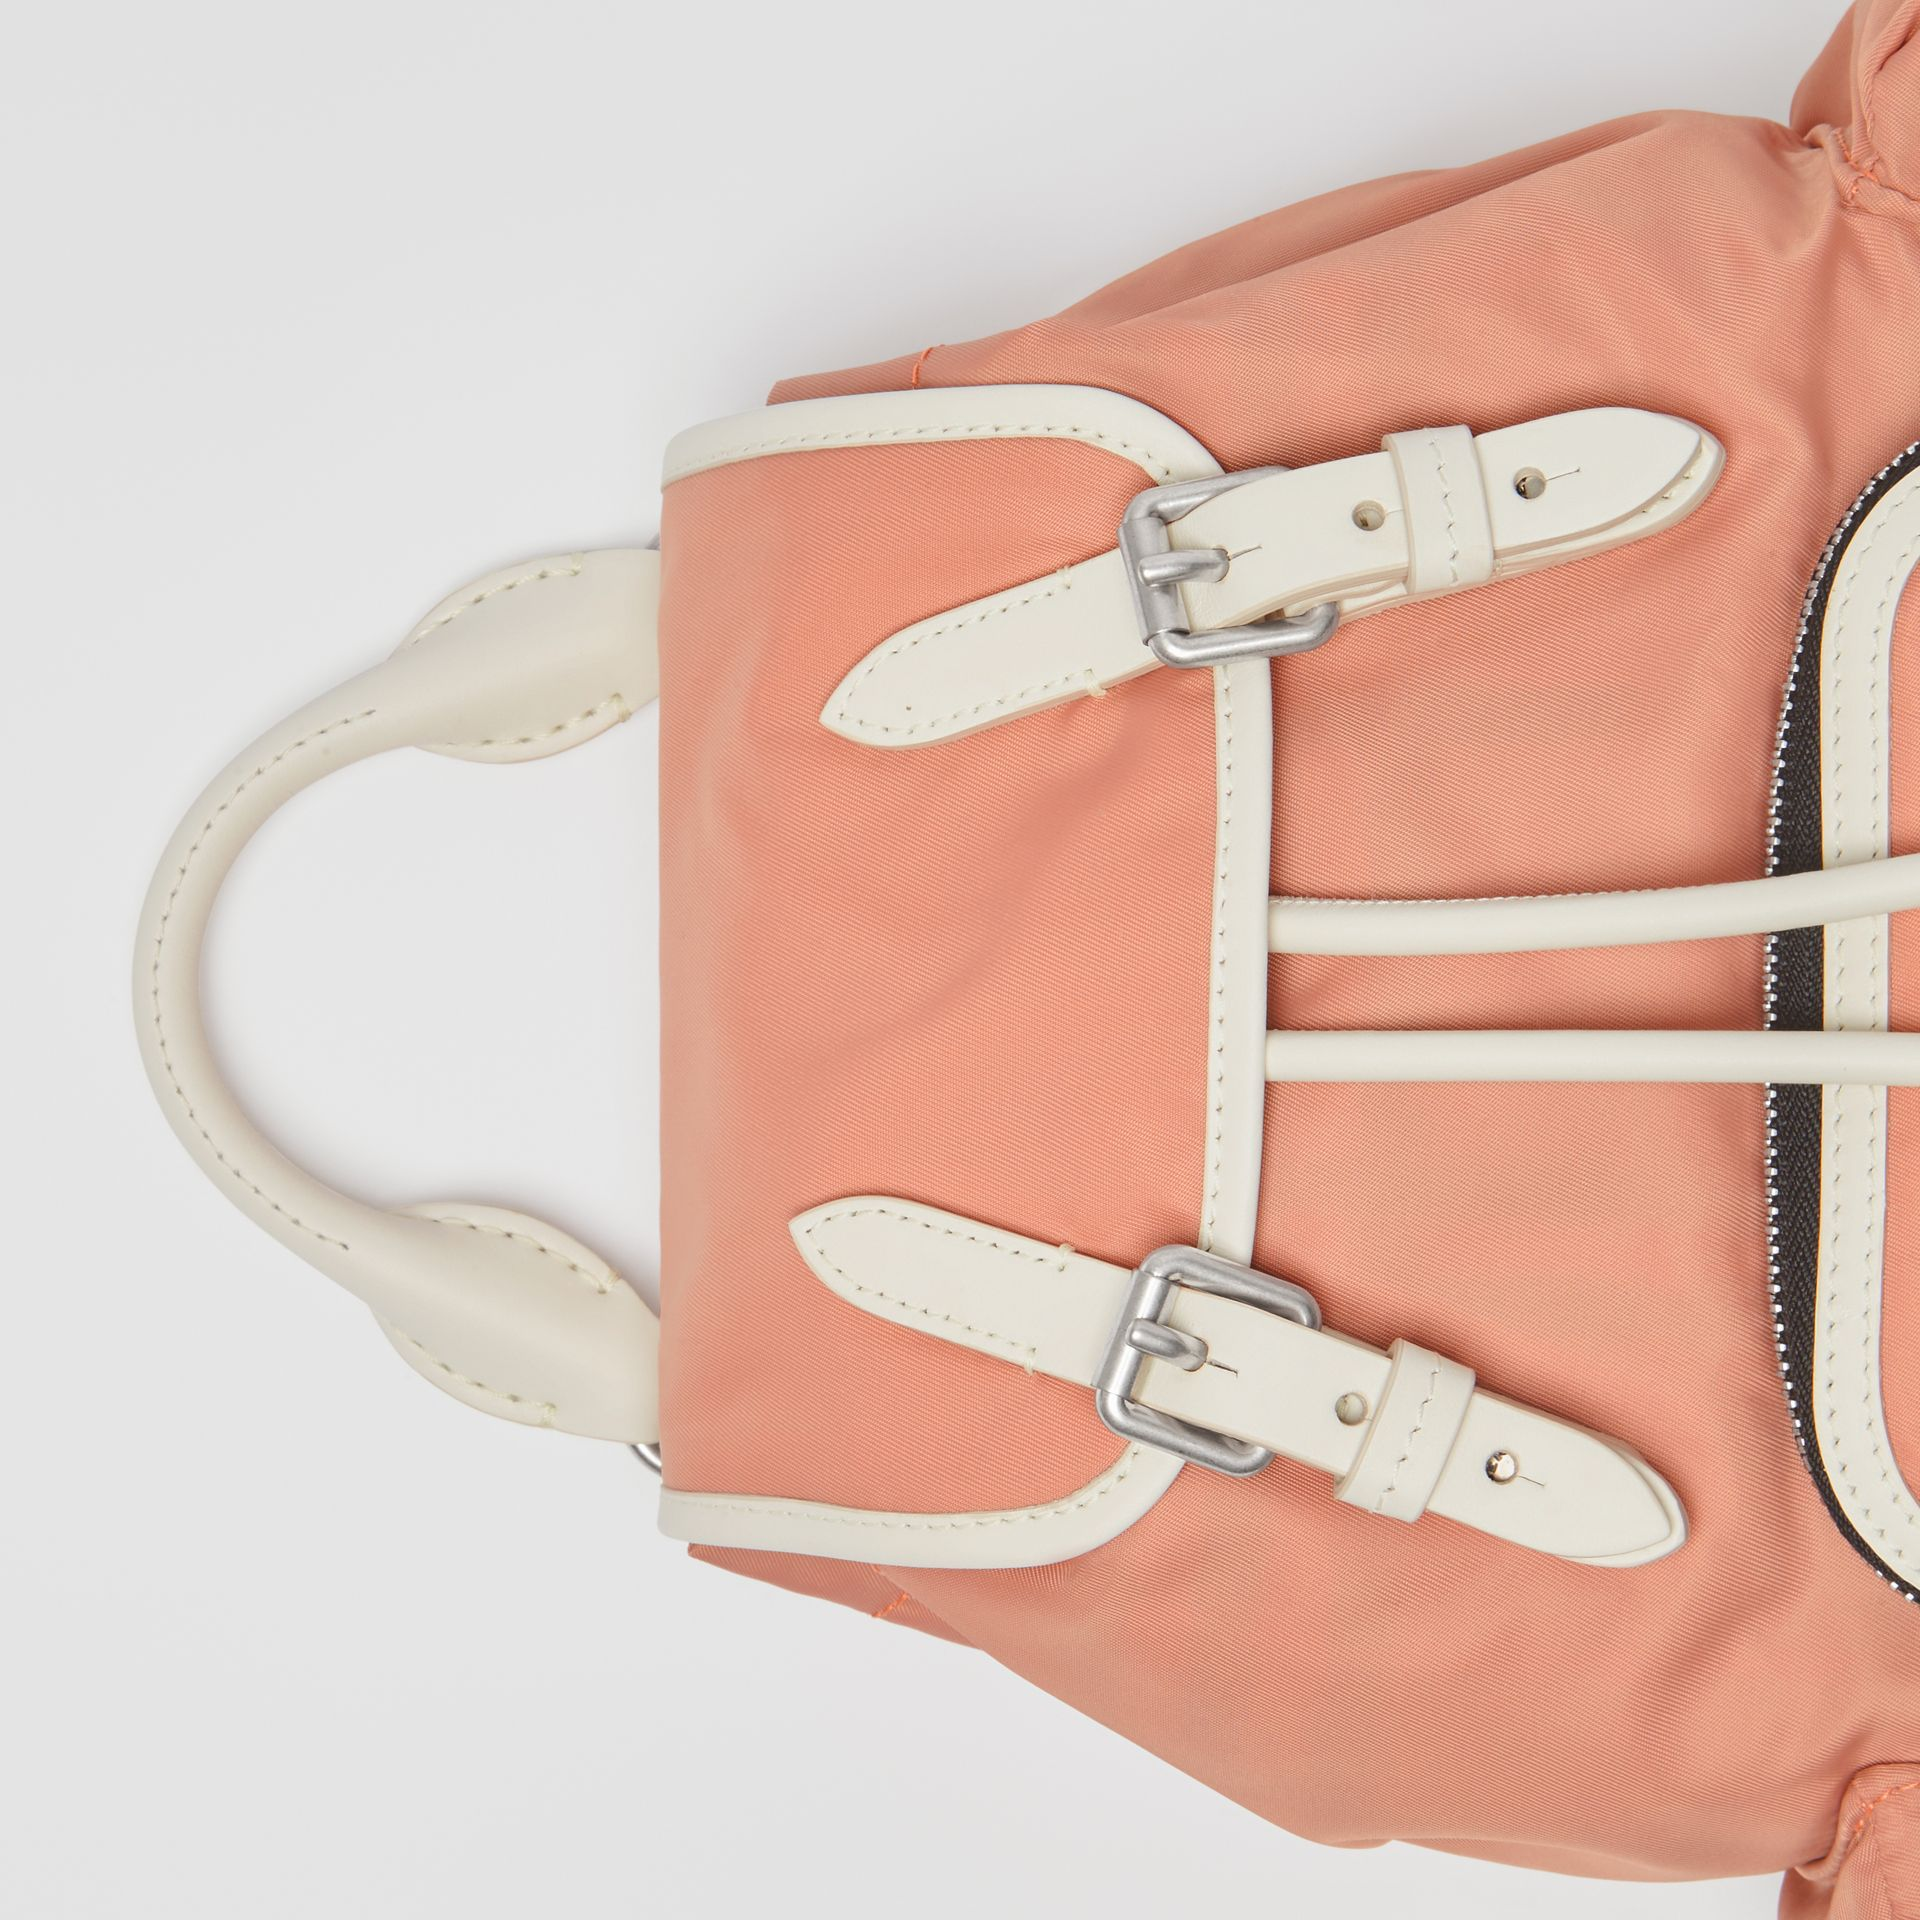 The Small Crossbody Rucksack in Nylon in Powder Pink - Women | Burberry - gallery image 1